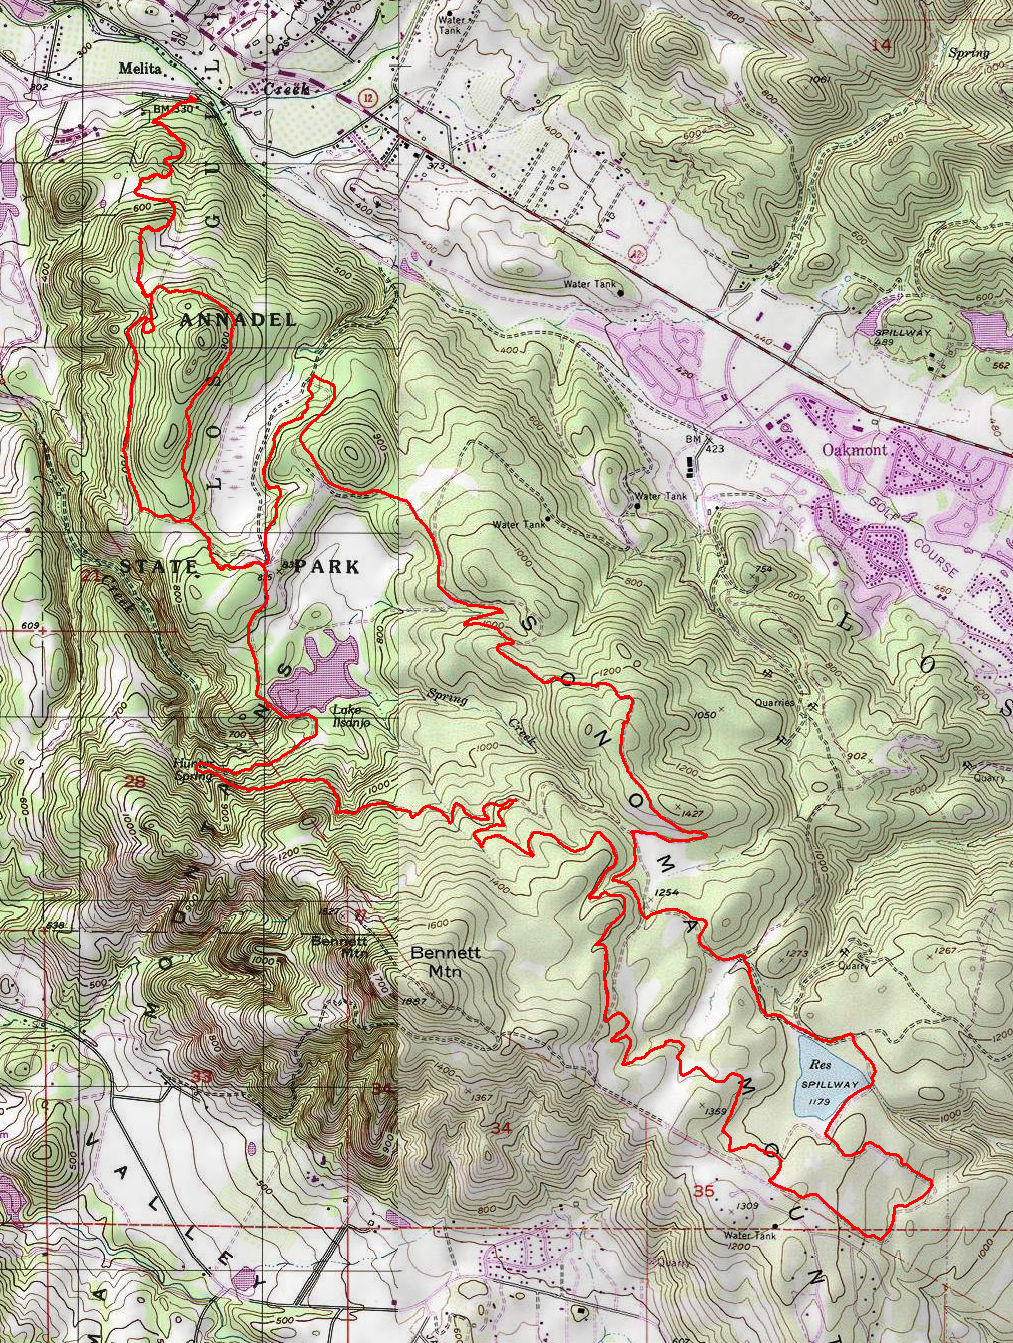 Annadel (Suggestion 1) - Bay Area Mountain Bike Rides